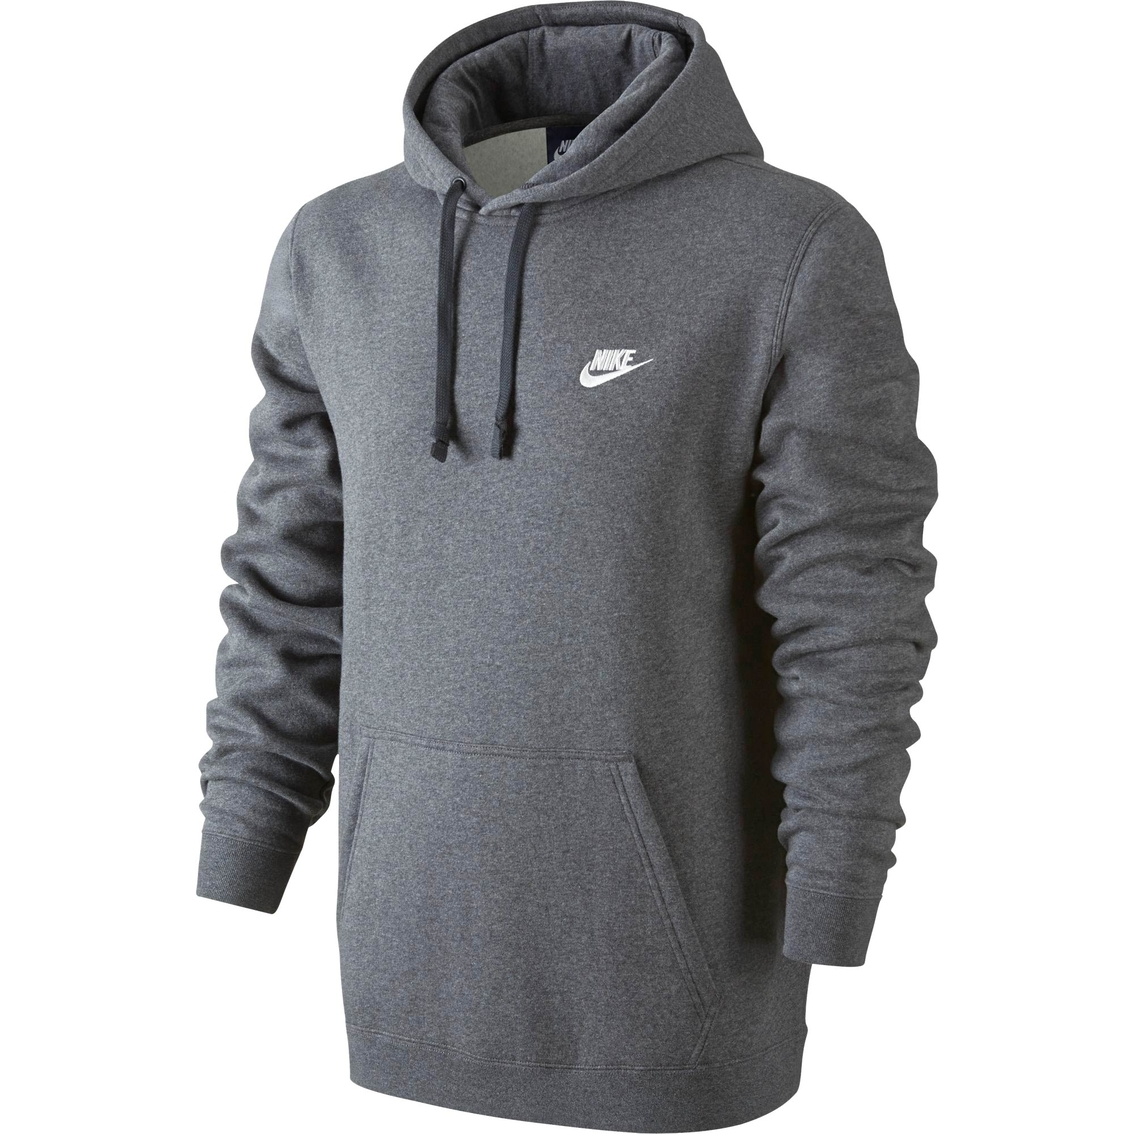 exquisite style best supplier detailing Nike Sportswear Club Pull Over Hoodie | Hoodies & Jackets ...